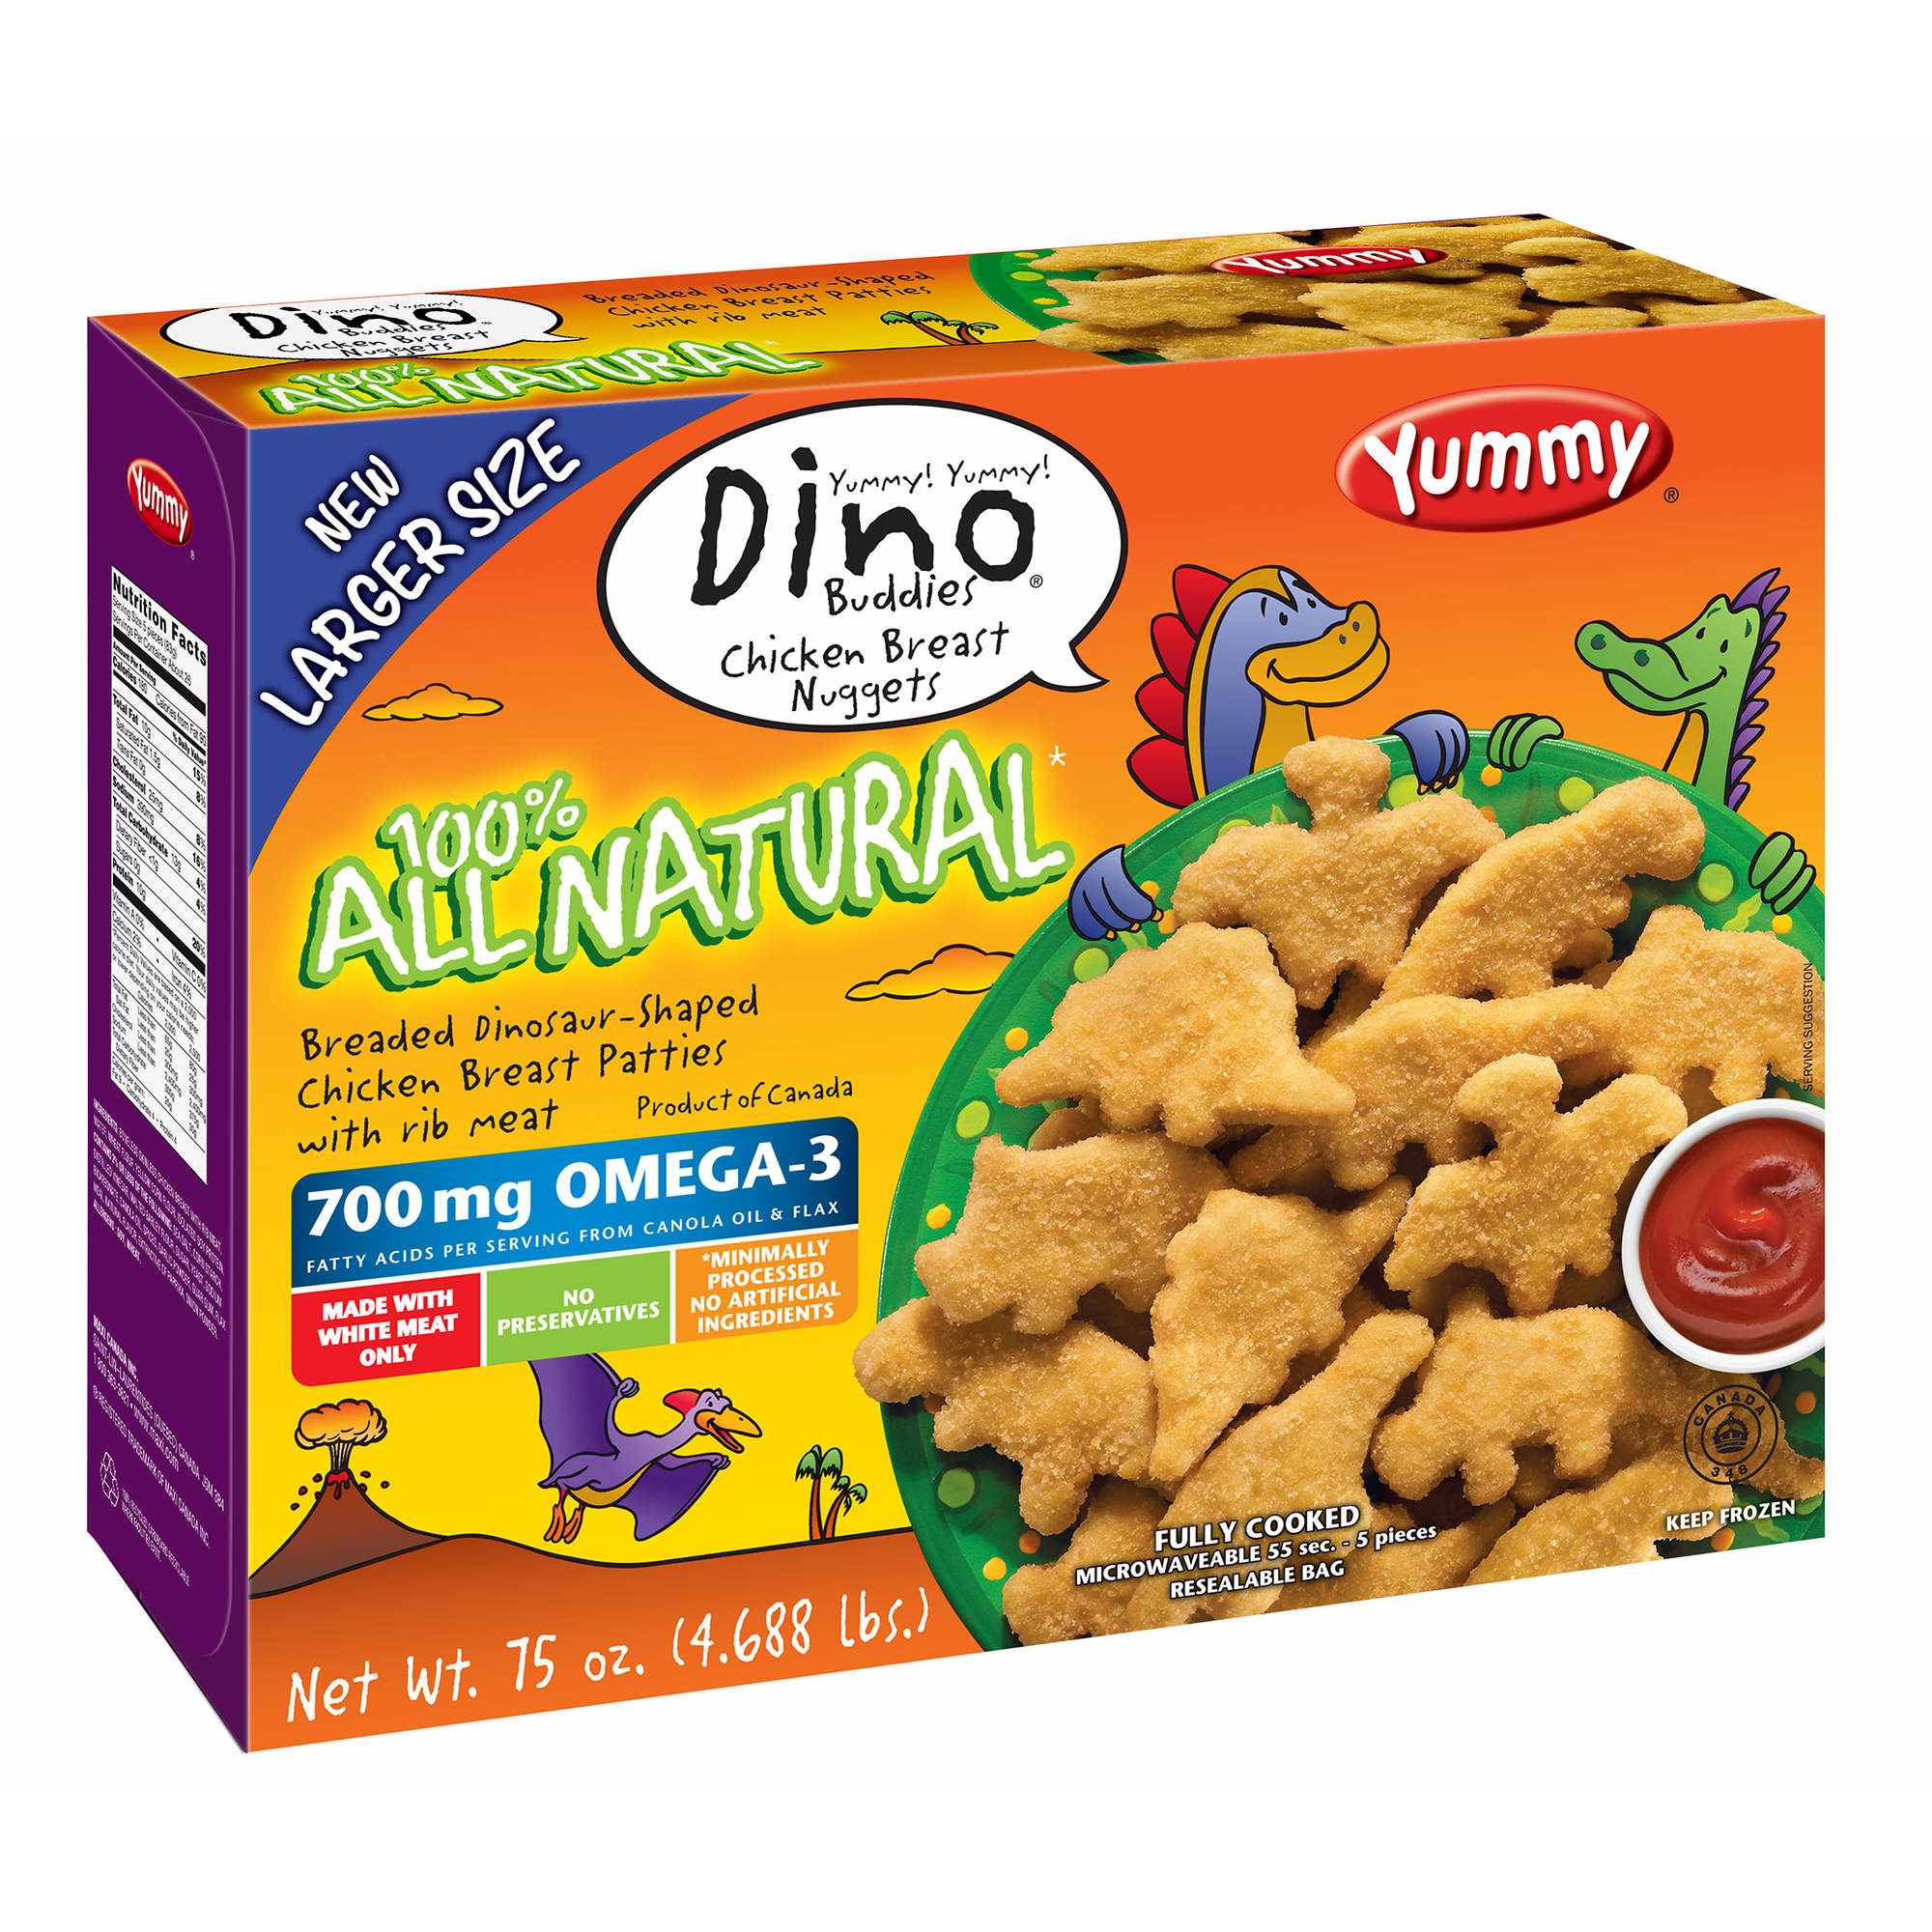 Yummy Dino Buddy All Natural Nuggets, 5 Pk./75 Oz.